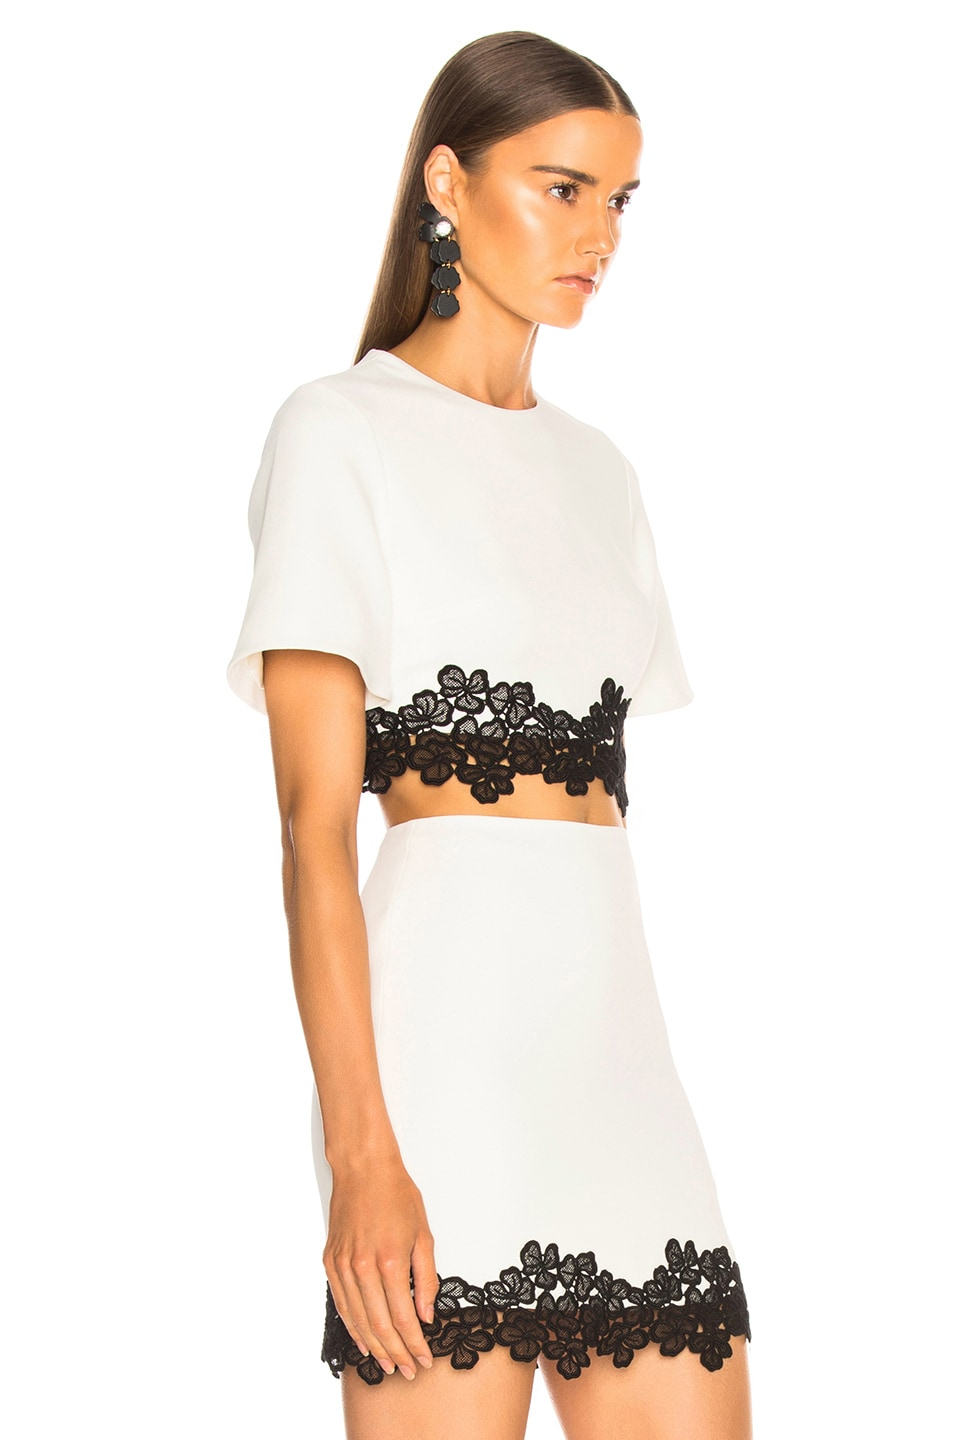 Image 2 of David Koma Lace Trim Cropped Top in White & Black